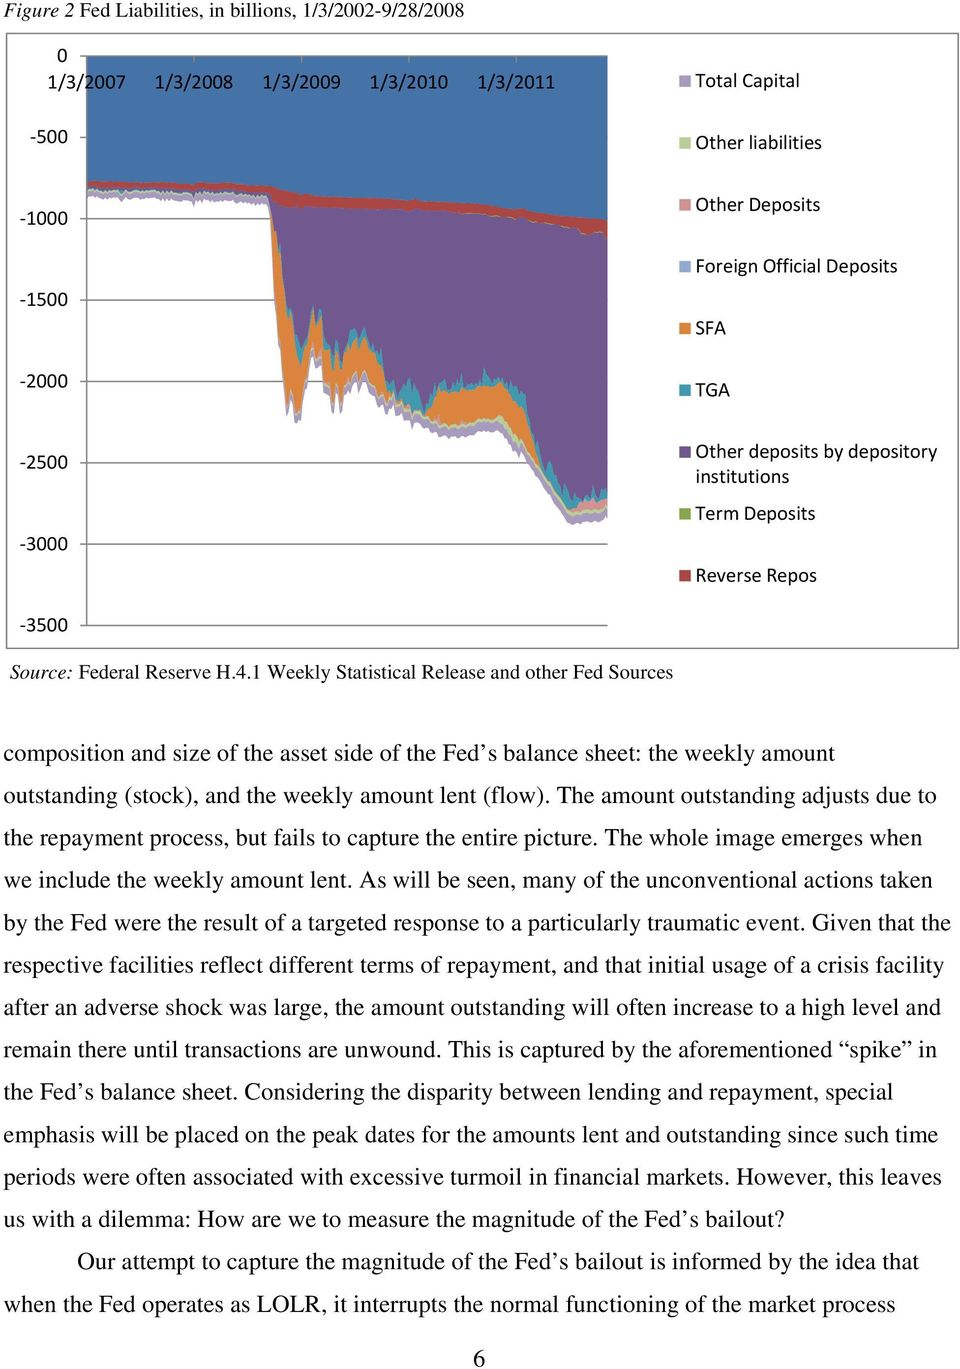 1 Weekly Statistical Release and other Fed Sources composition and size of the asset side of the Fed s balance sheet: the weekly amount outstanding (stock), and the weekly amount lent (flow).